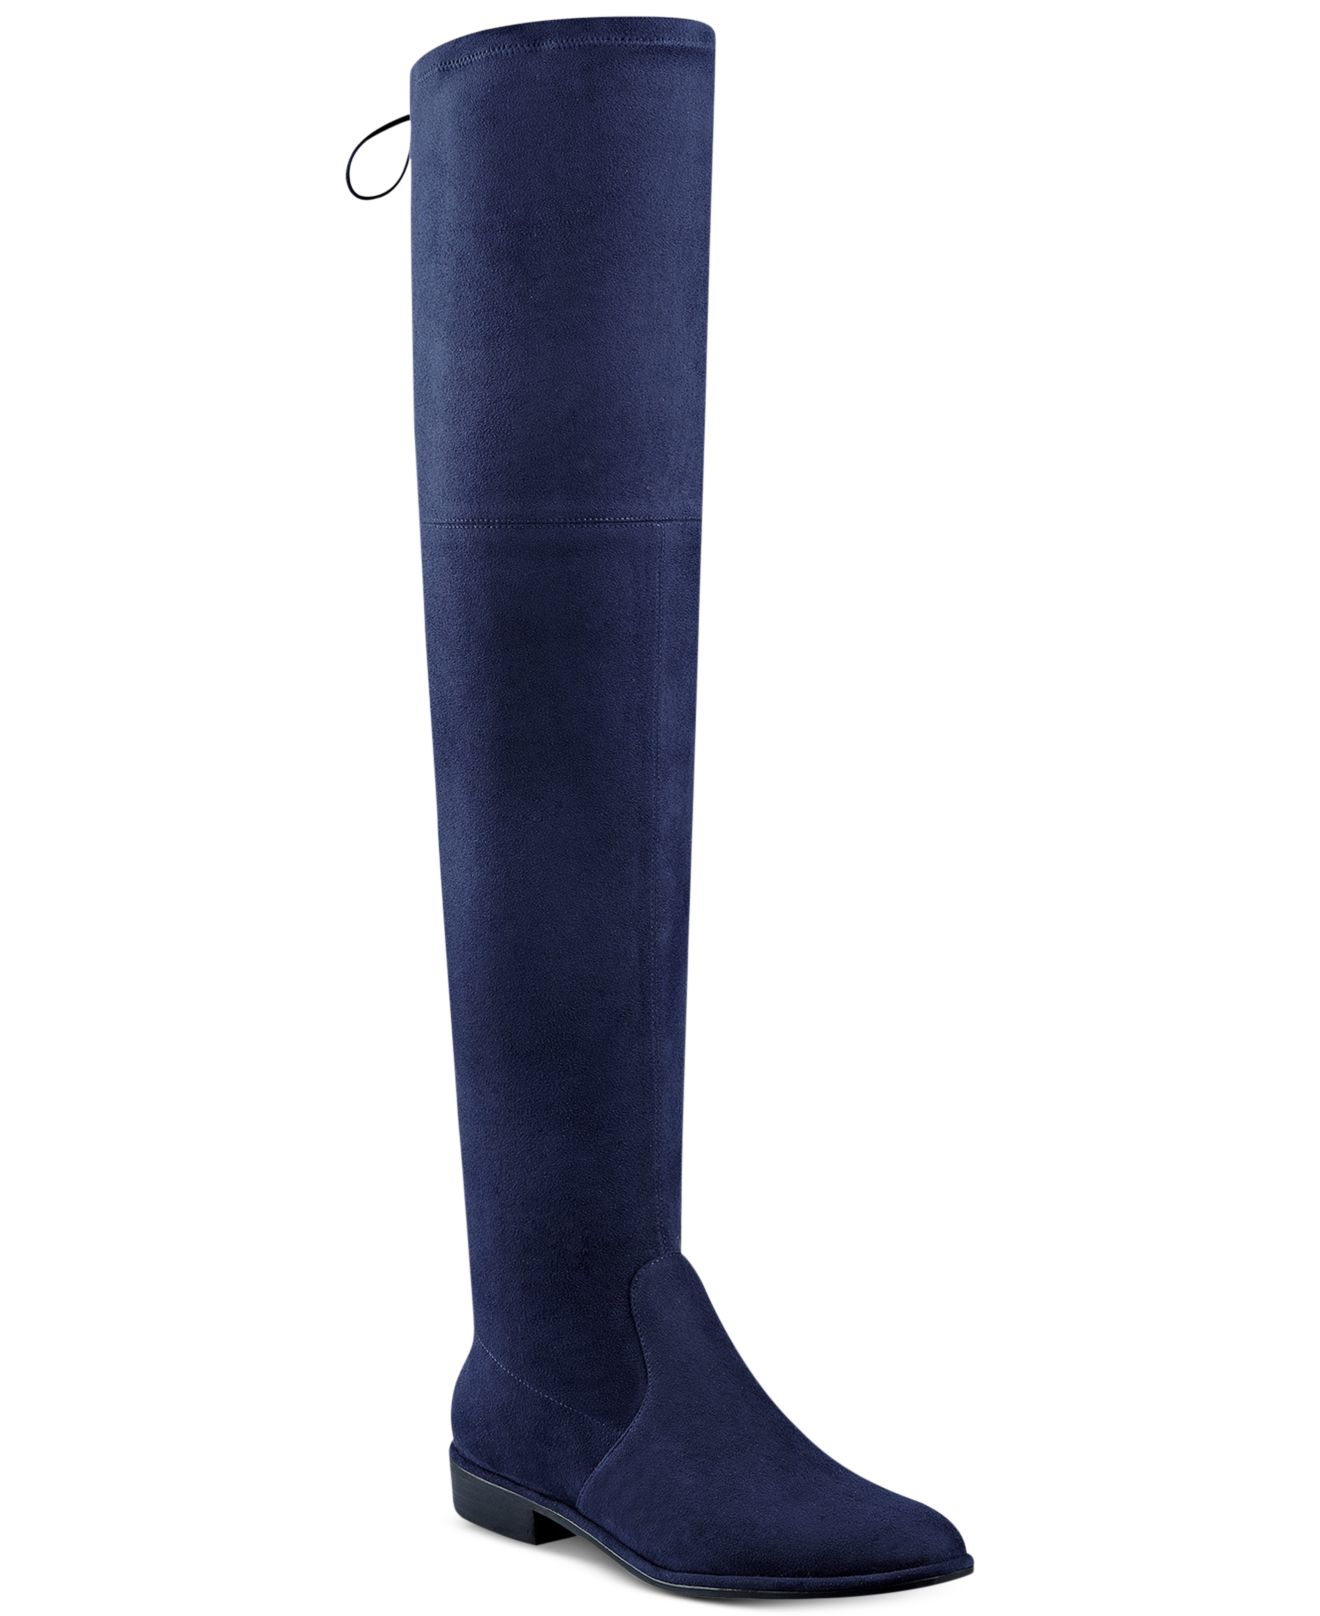 Marc fisher Humor Over-the-knee Boots in Blue | Lyst